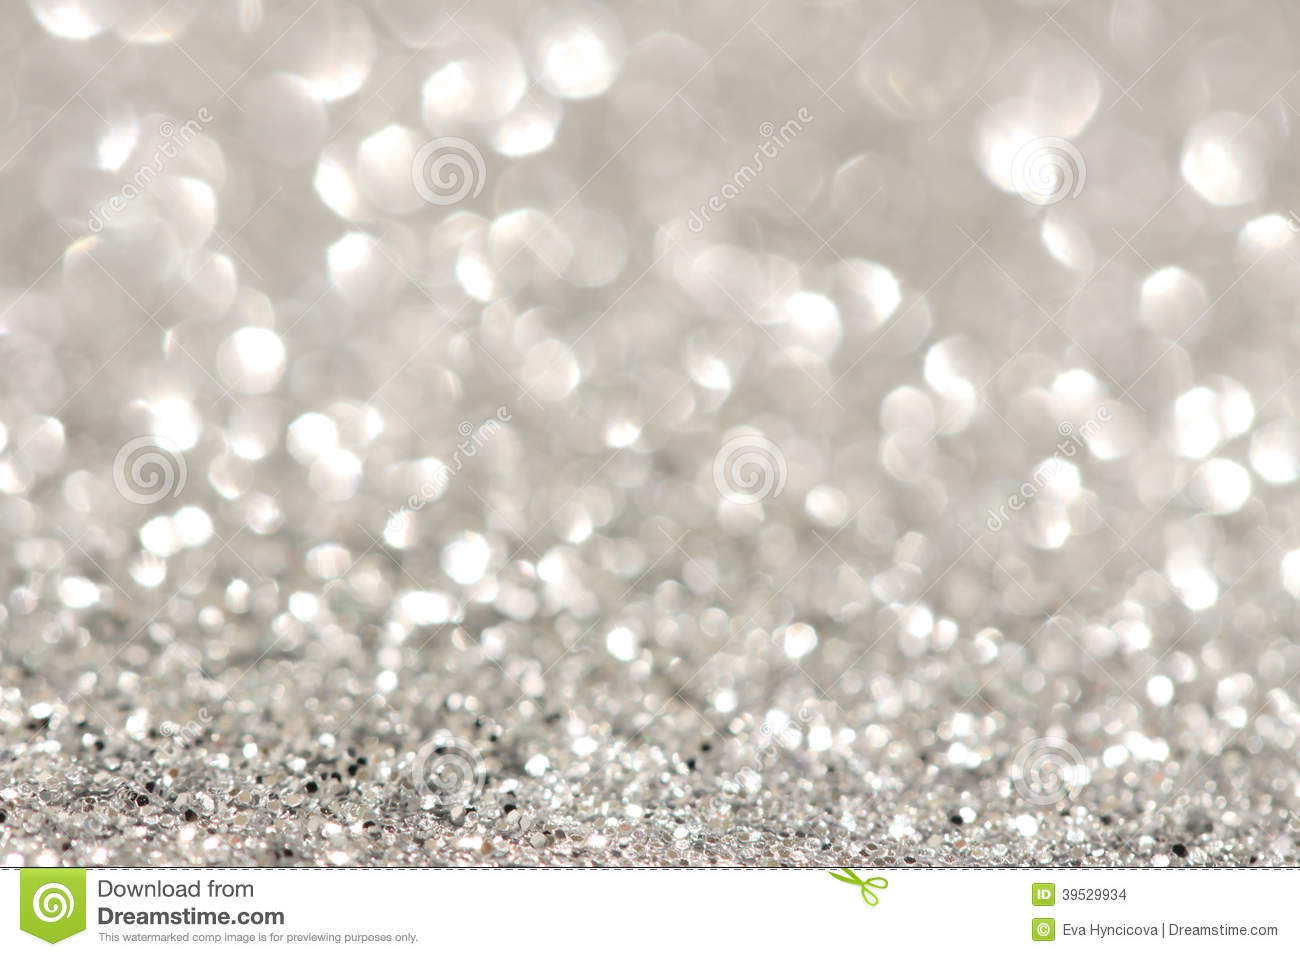 silver sparkly background - photo #27